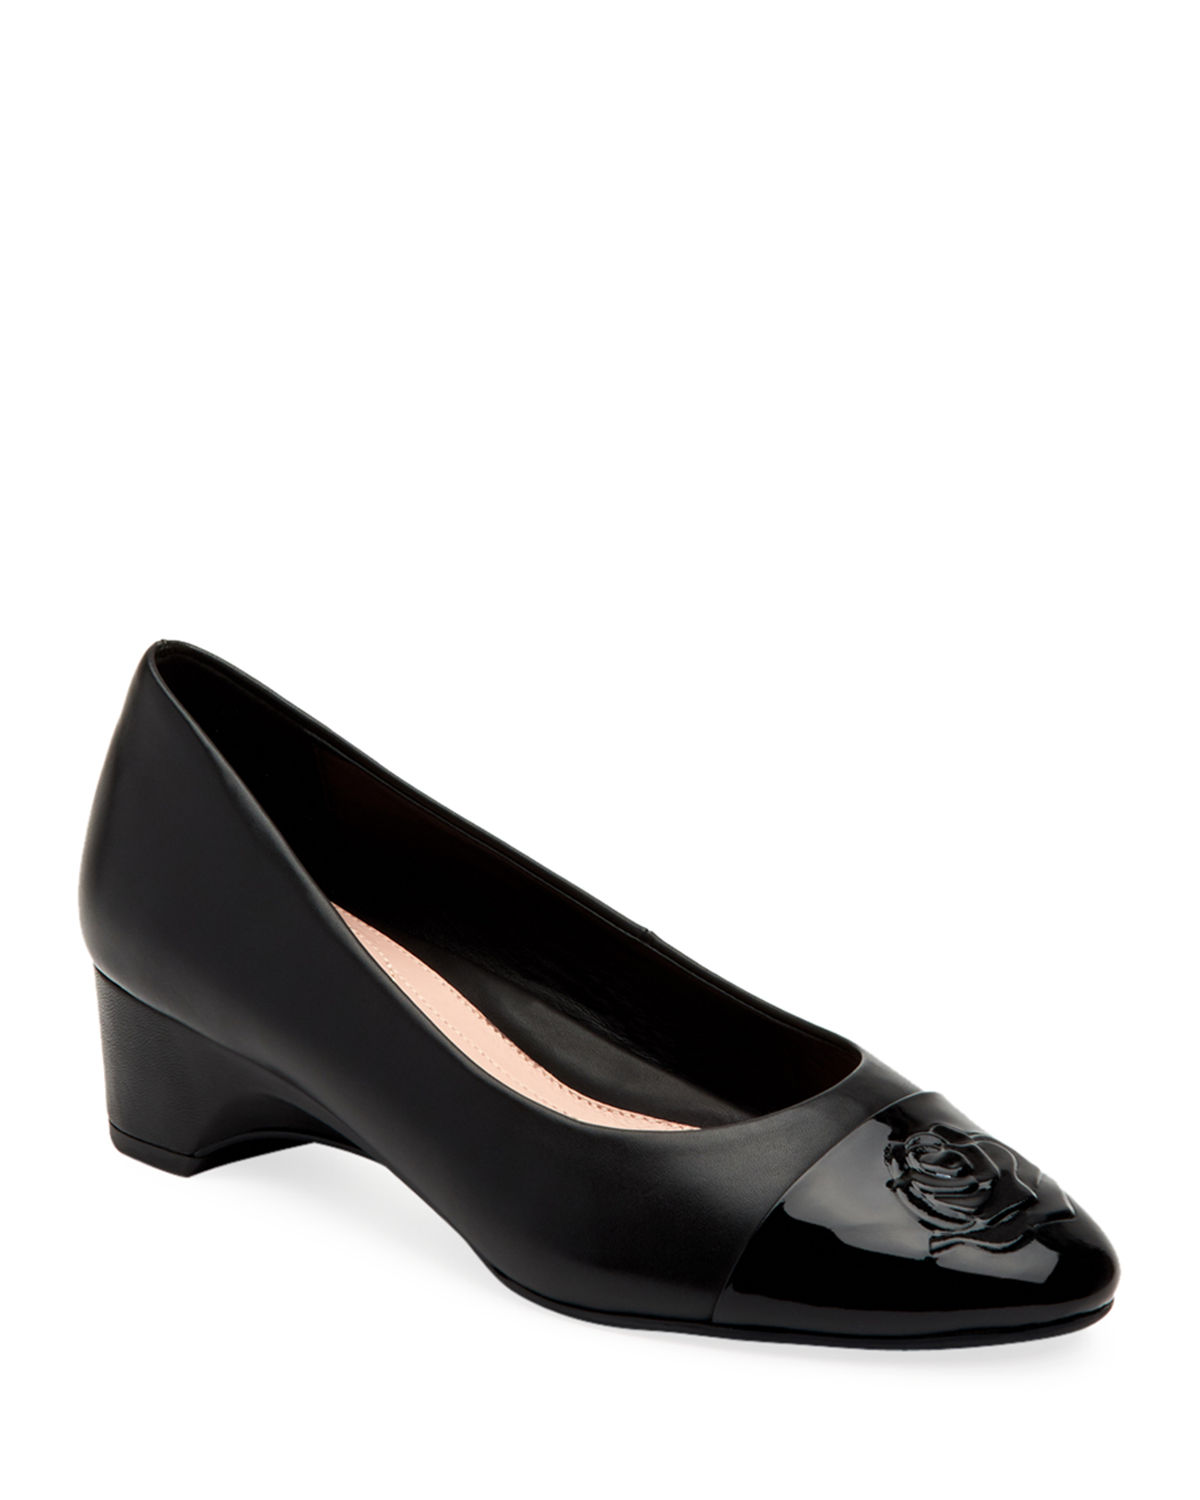 Taryn Rose Pumps BABE PATENT-CAPPED LEATHER BALLET PUMPS